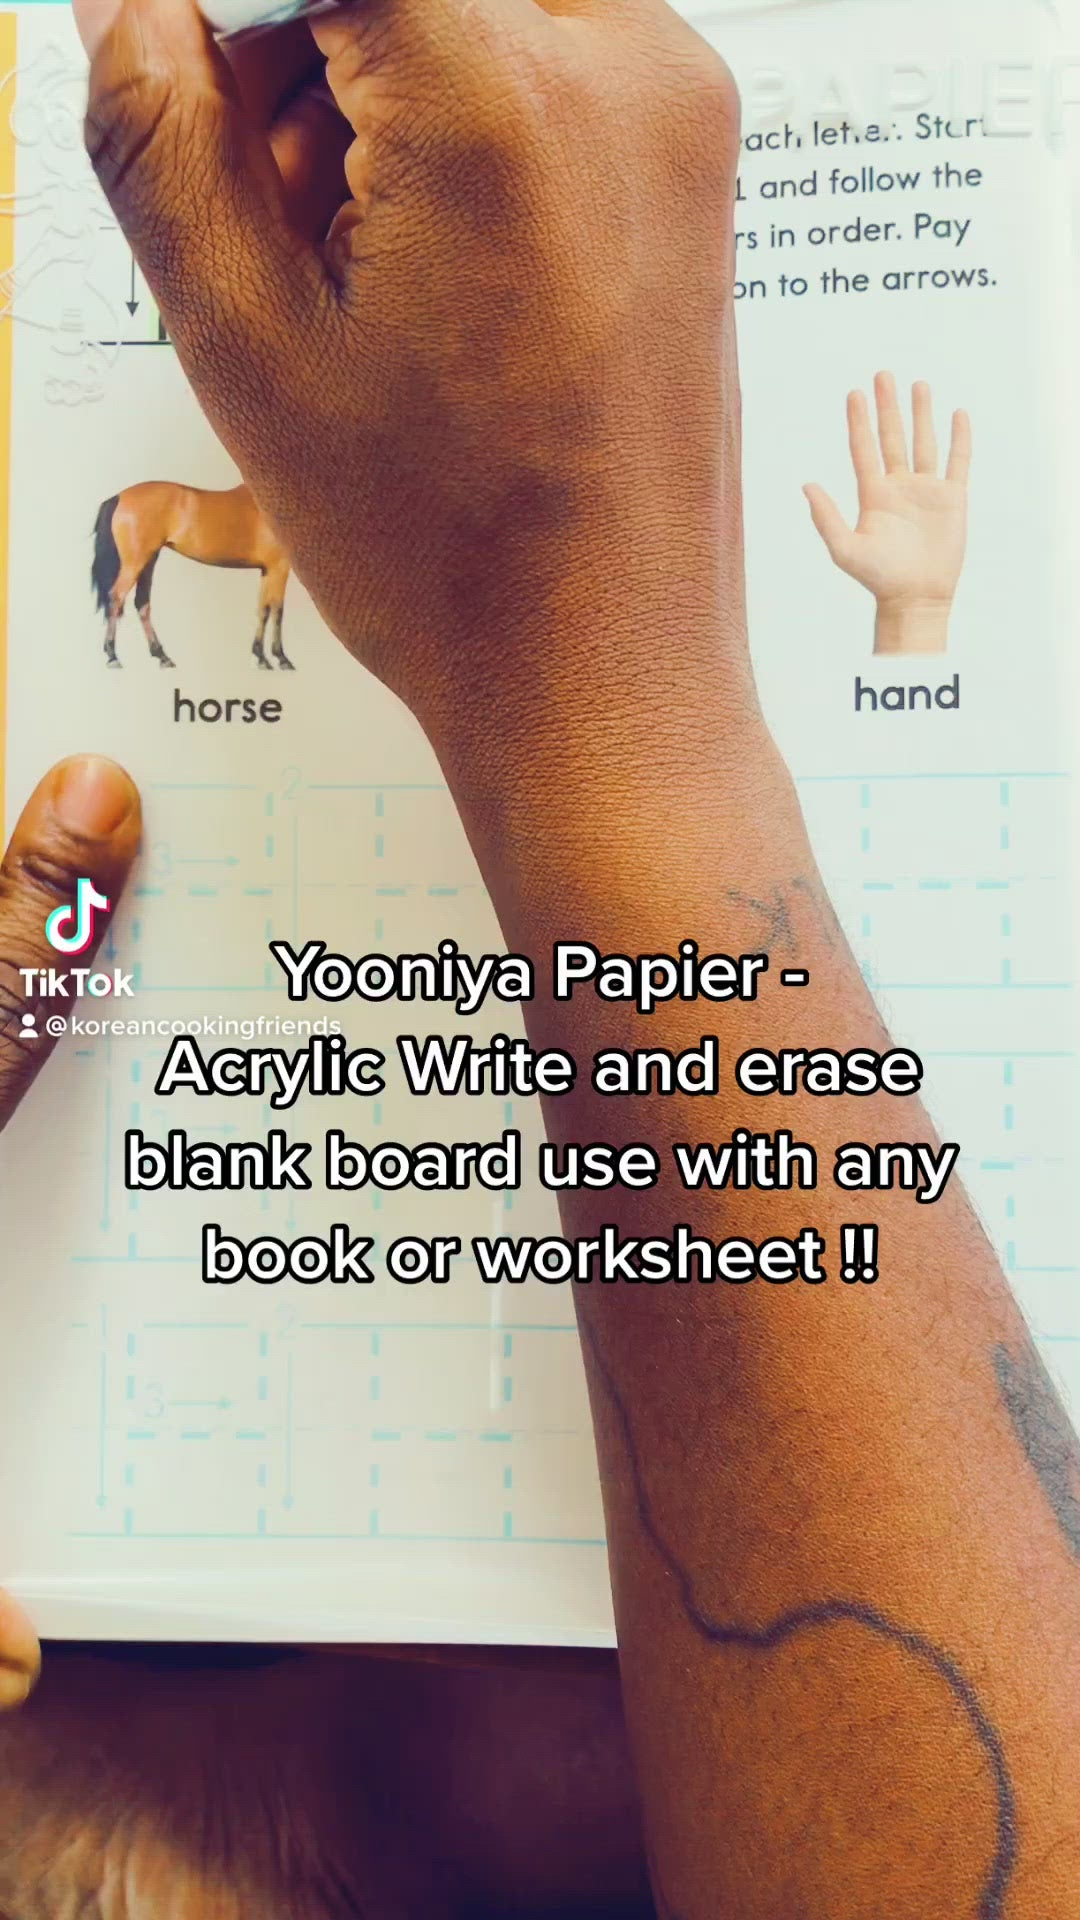 YOONIYA PAPIER REWRITABLE ACRYLIC TABLET